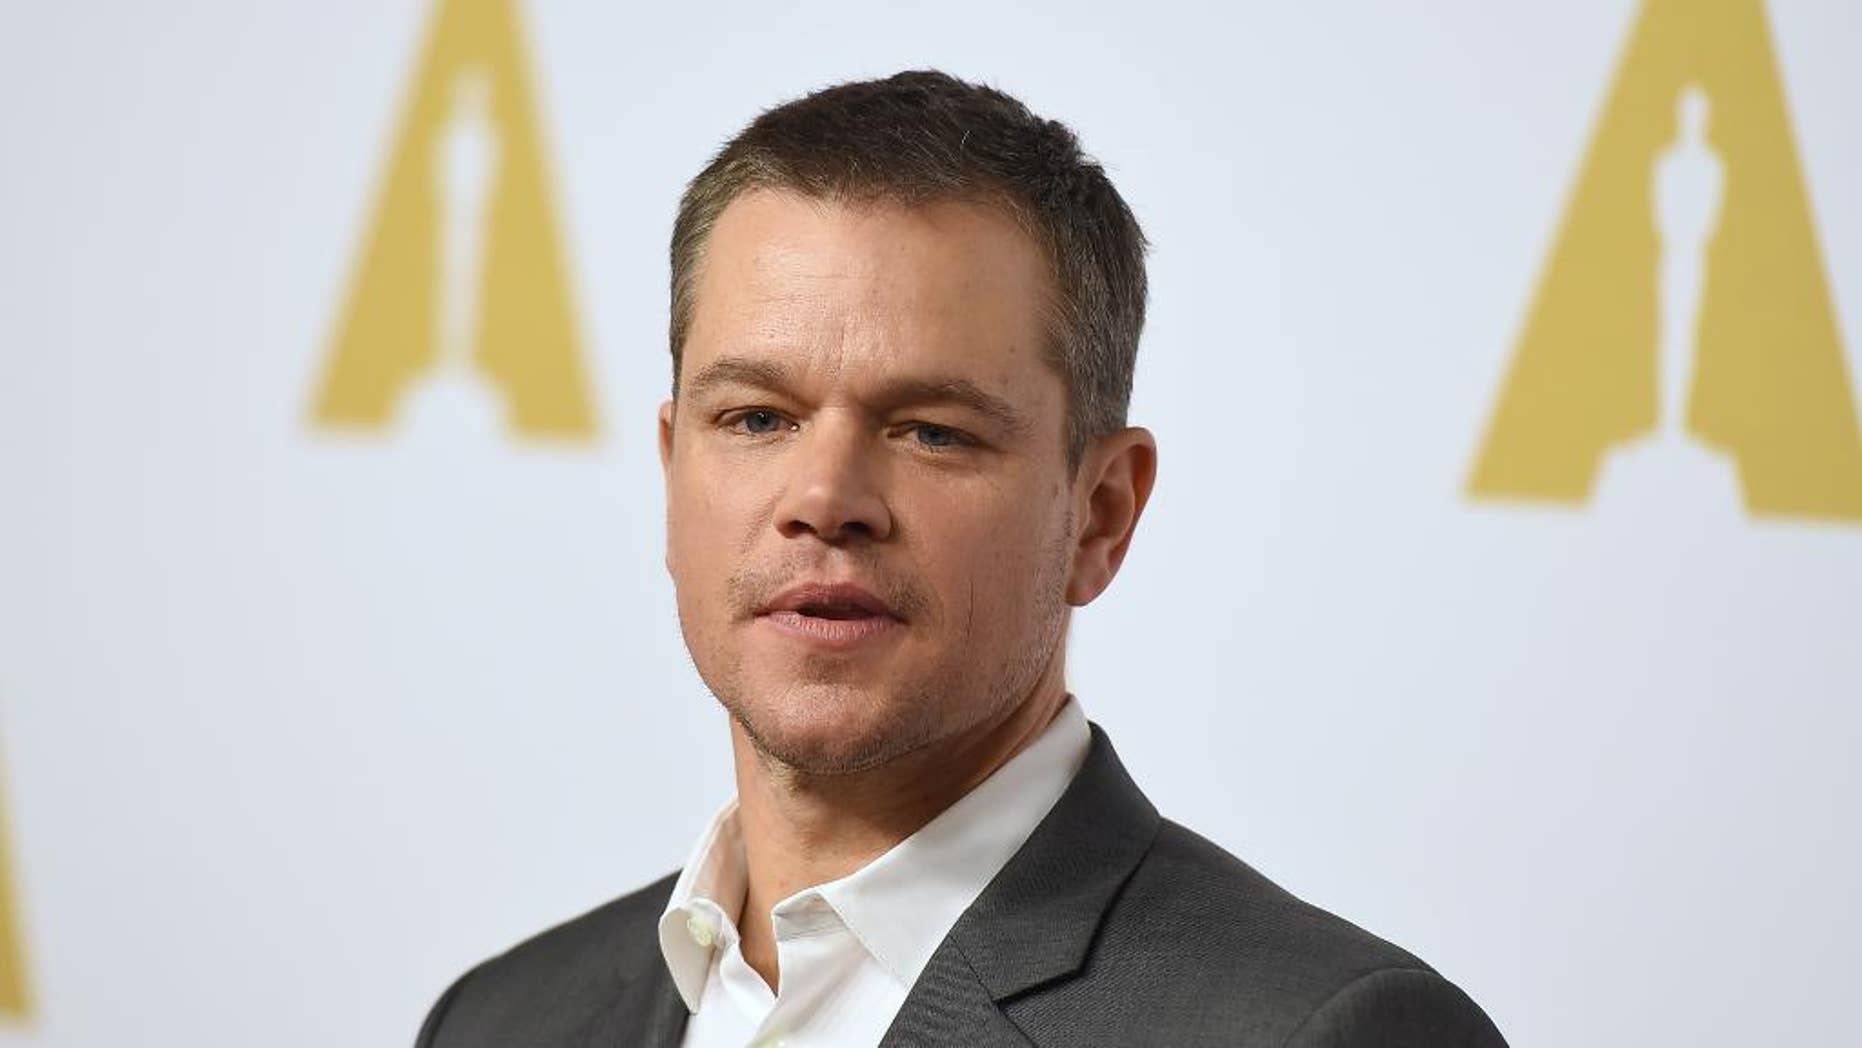 """FILE- In this Feb. 8, 2016, file photo, Matt Damon arrives at the 88th Academy Awards Nominees Luncheon at The Beverly Hilton hotel in Beverly Hills, Calif. Matt Damon is returning to the campus of the Massachusetts Institute of Technology, where he played a mathematically gifted custodian in the 1997 hit movie """"Good Will Hunting,"""" to deliver the commencement address on Friday, June 3. (Photo by Jordan Strauss/Invision/AP, File)"""